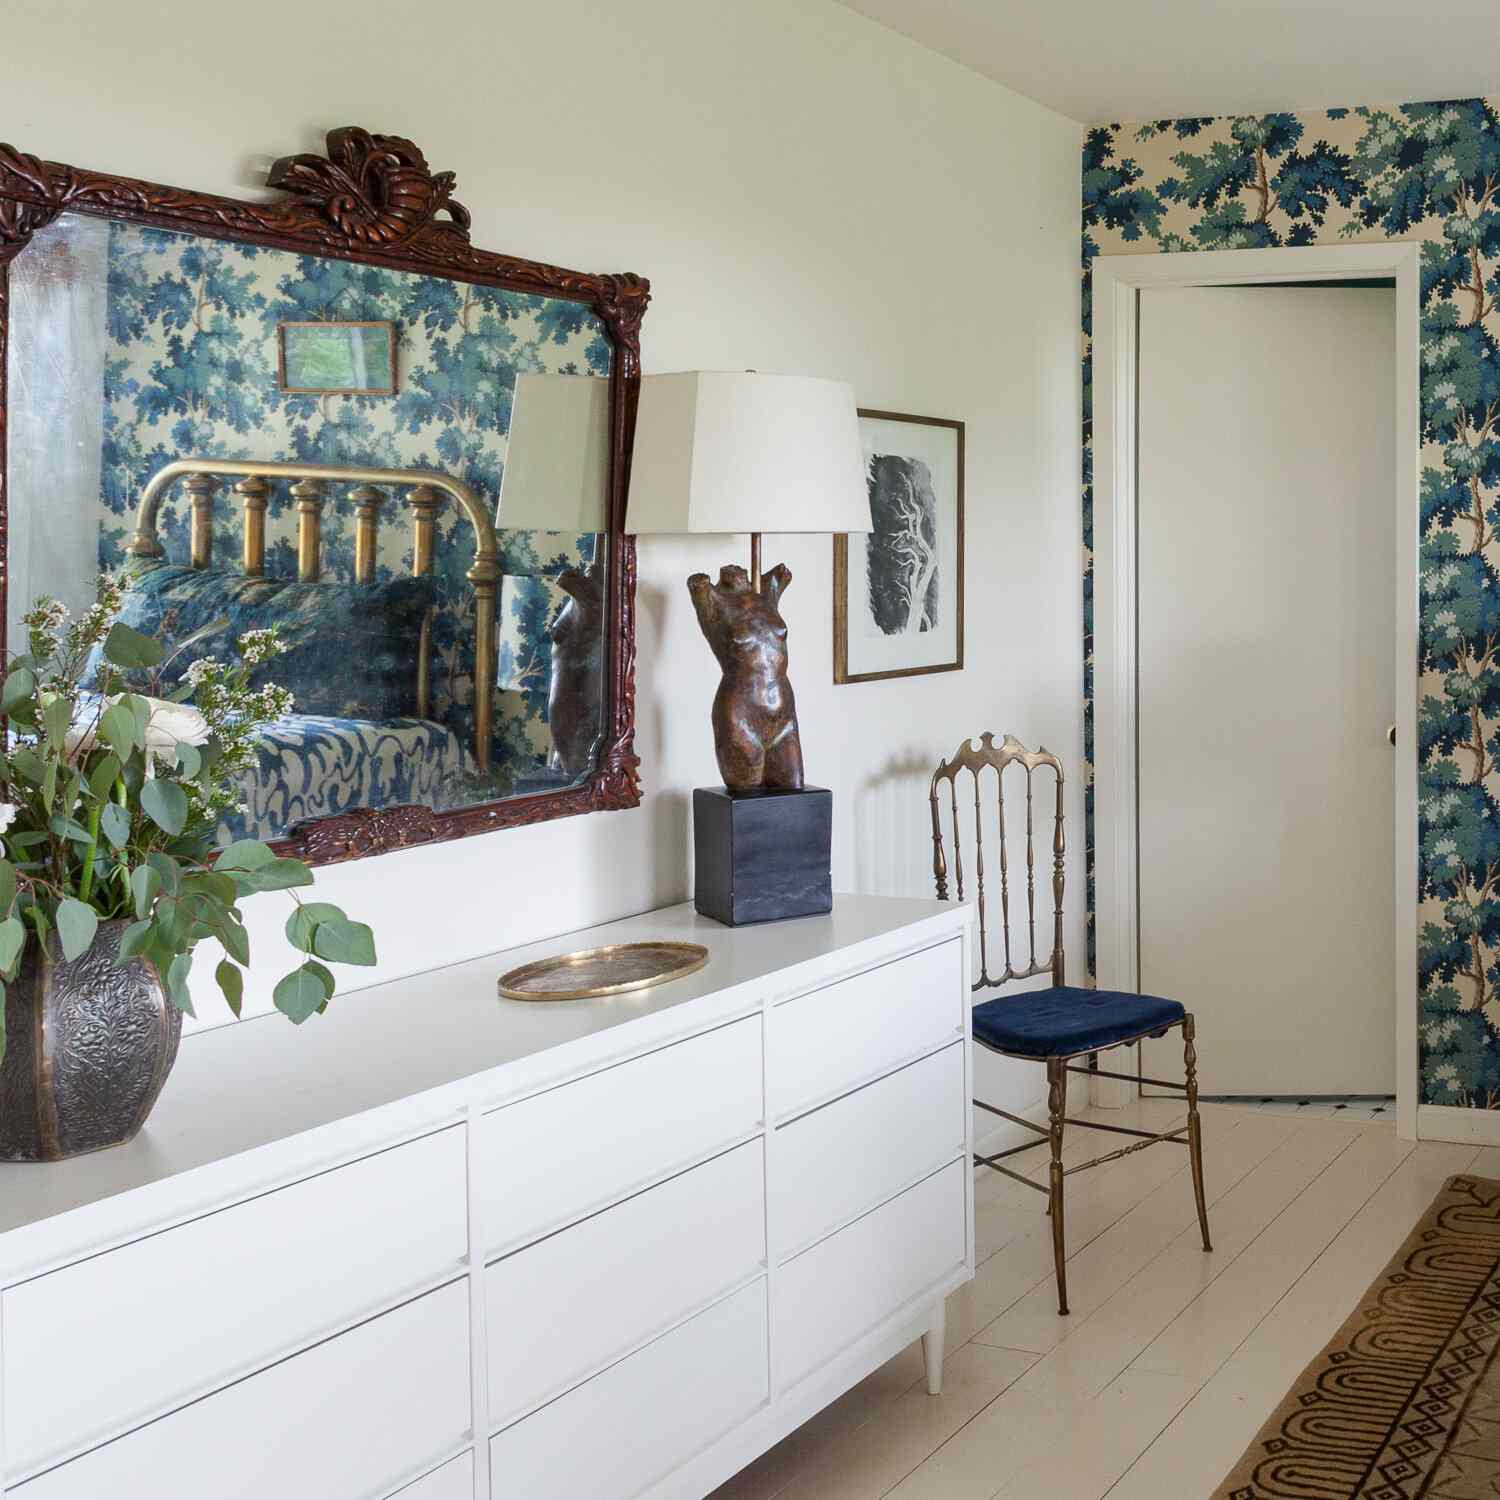 A bedroom mirror highlighting an accent wall covered in wallpaper